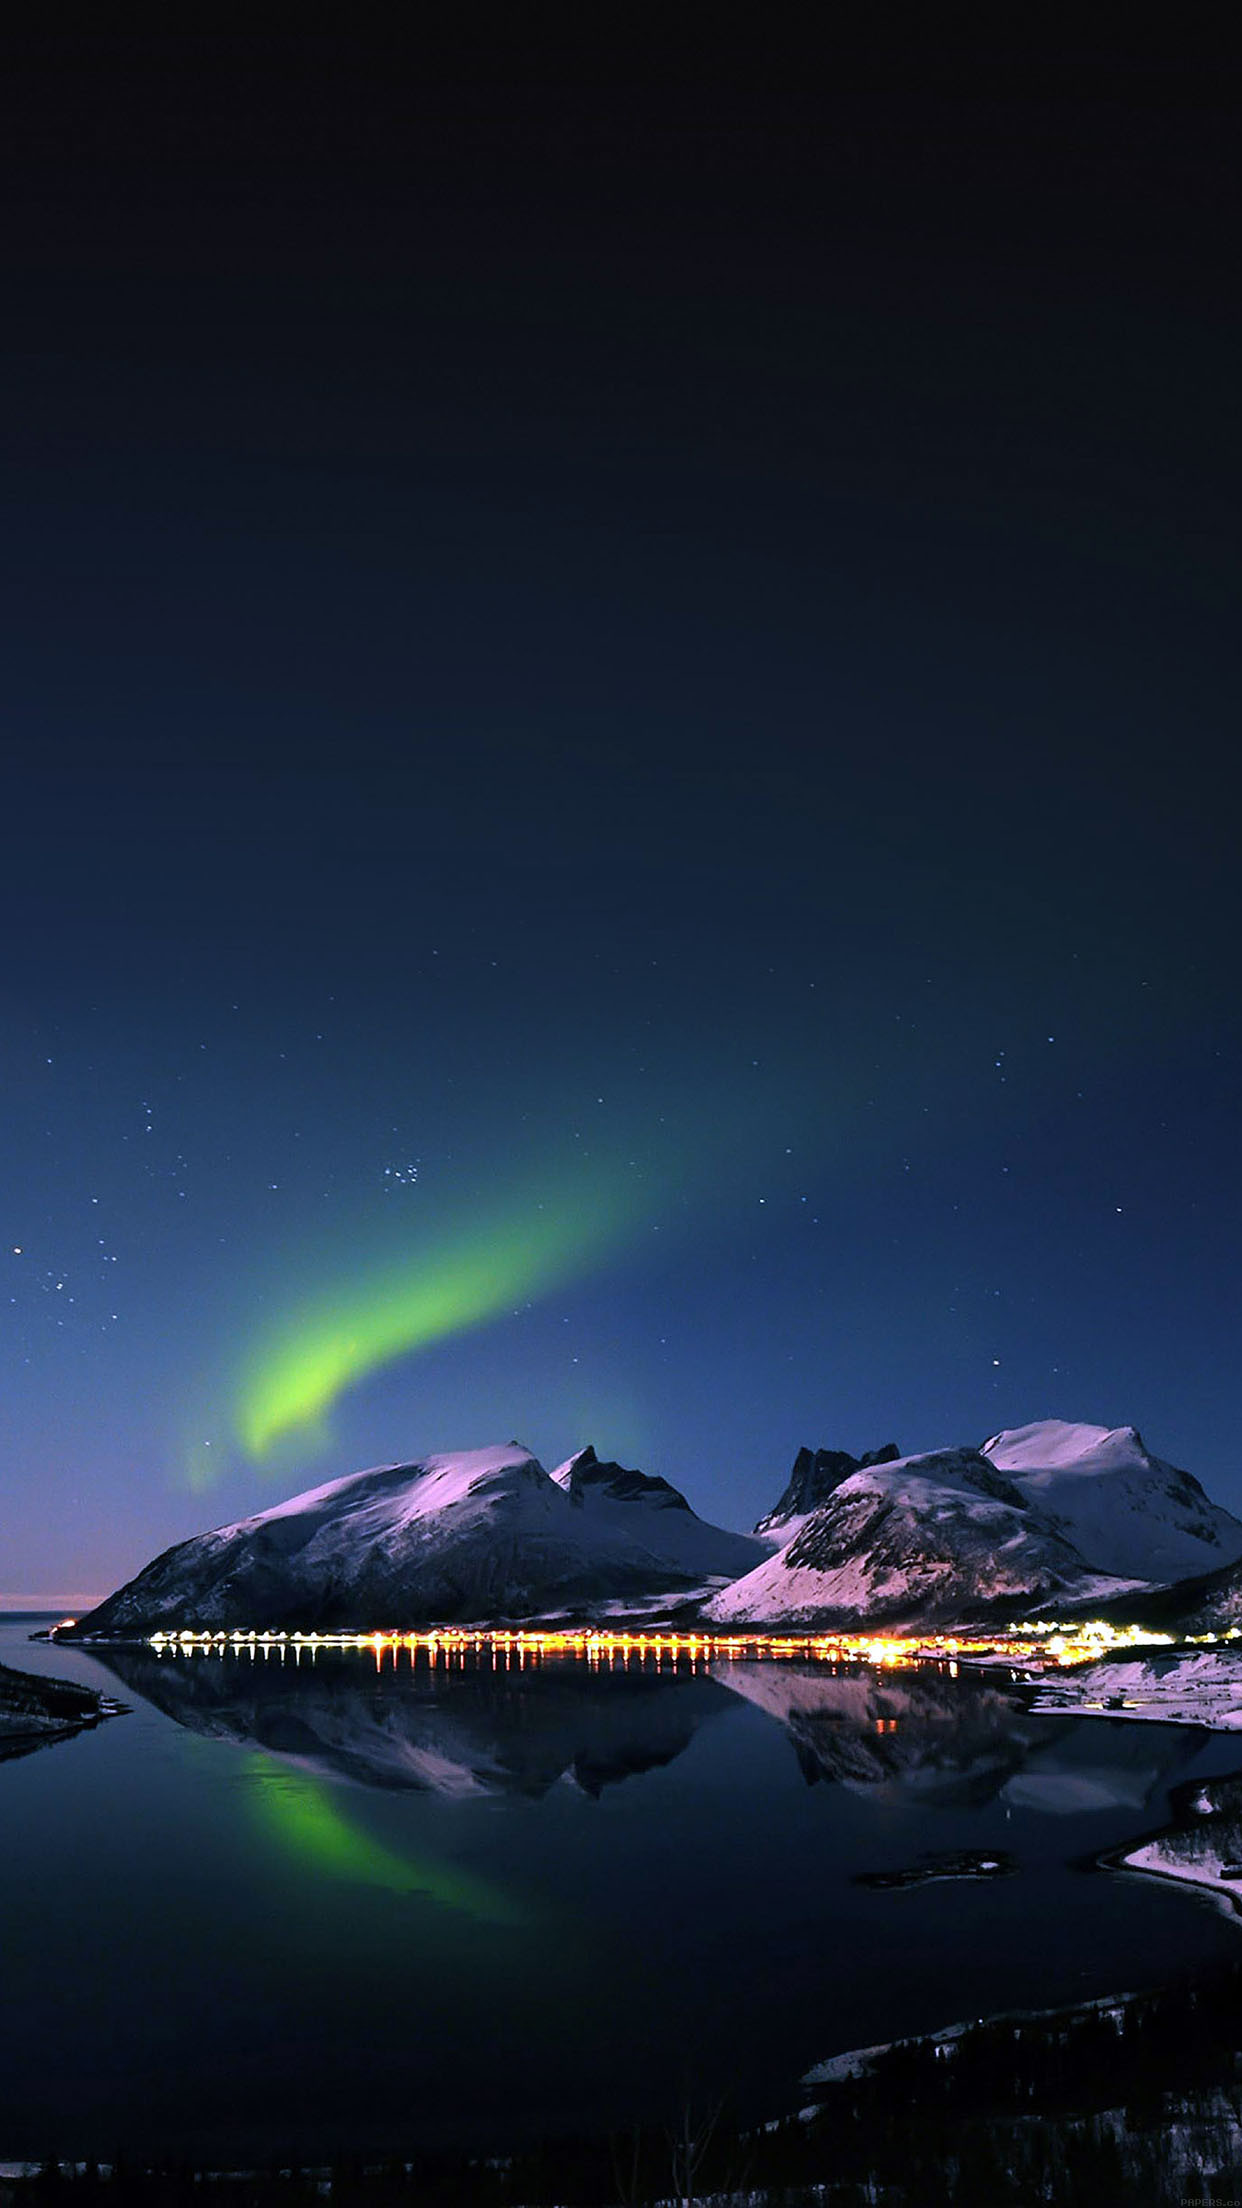 Aurora Night Snow Mountains Dock Lights android wallpaper HD